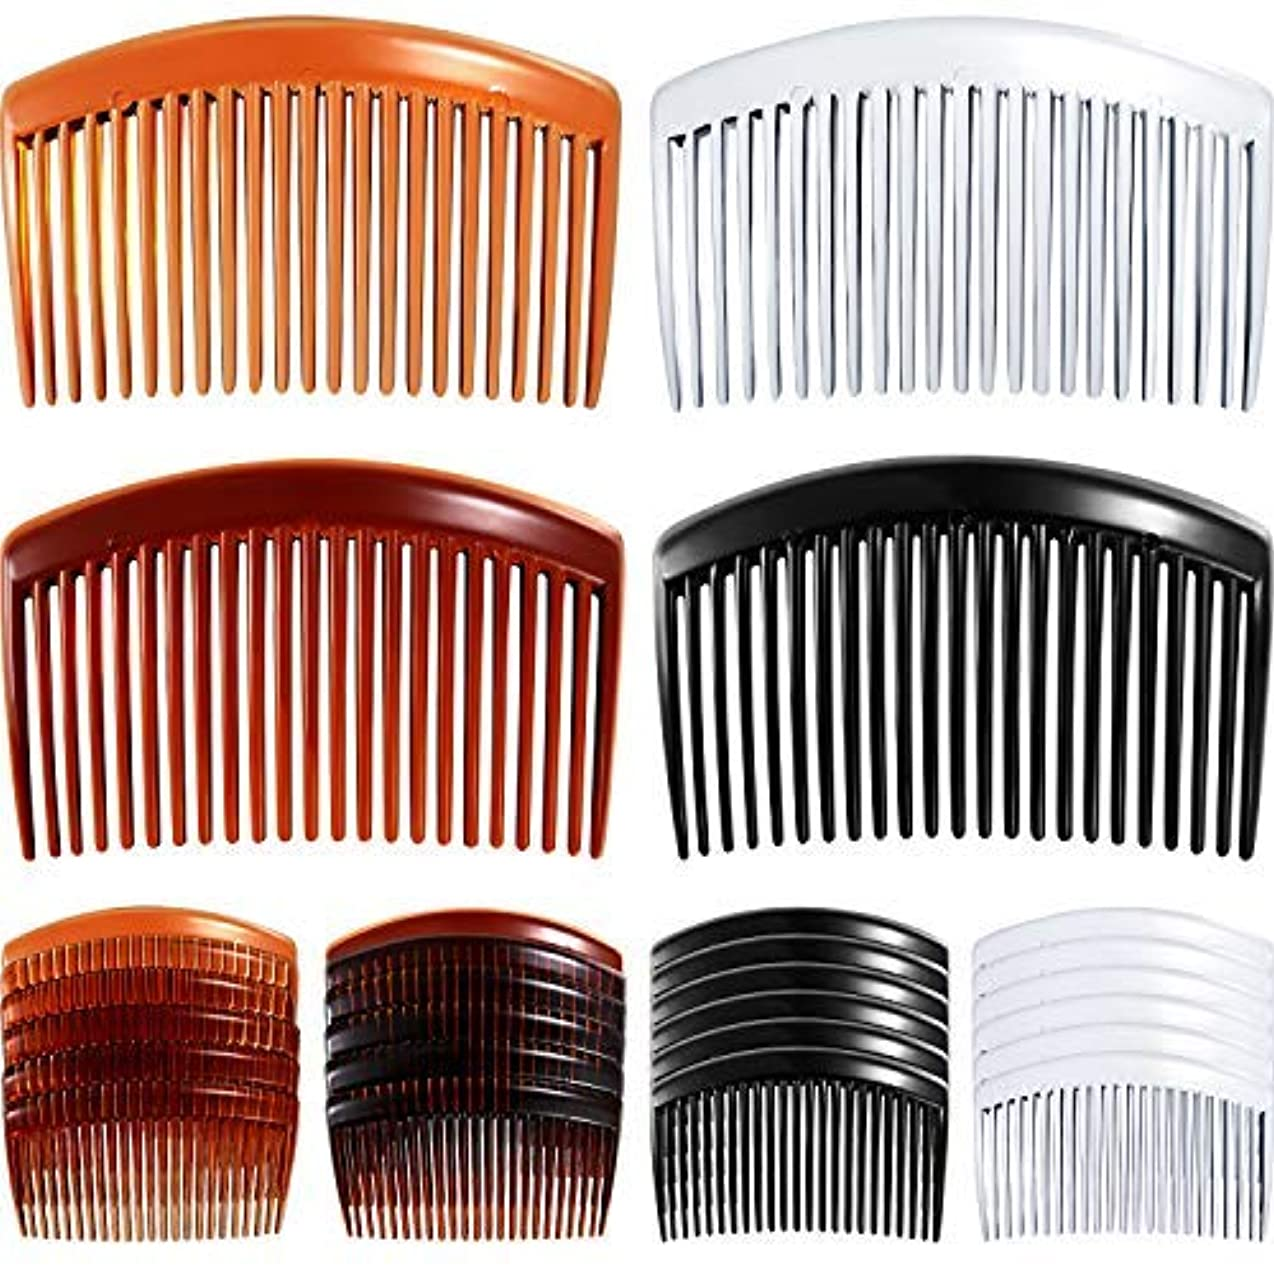 思慮のない小売軍24 Pieces Hair Comb Plastic Hair Side Combs Straight Teeth Hair Clip Comb Bridal Wedding Veil Comb for Fine Hair [並行輸入品]